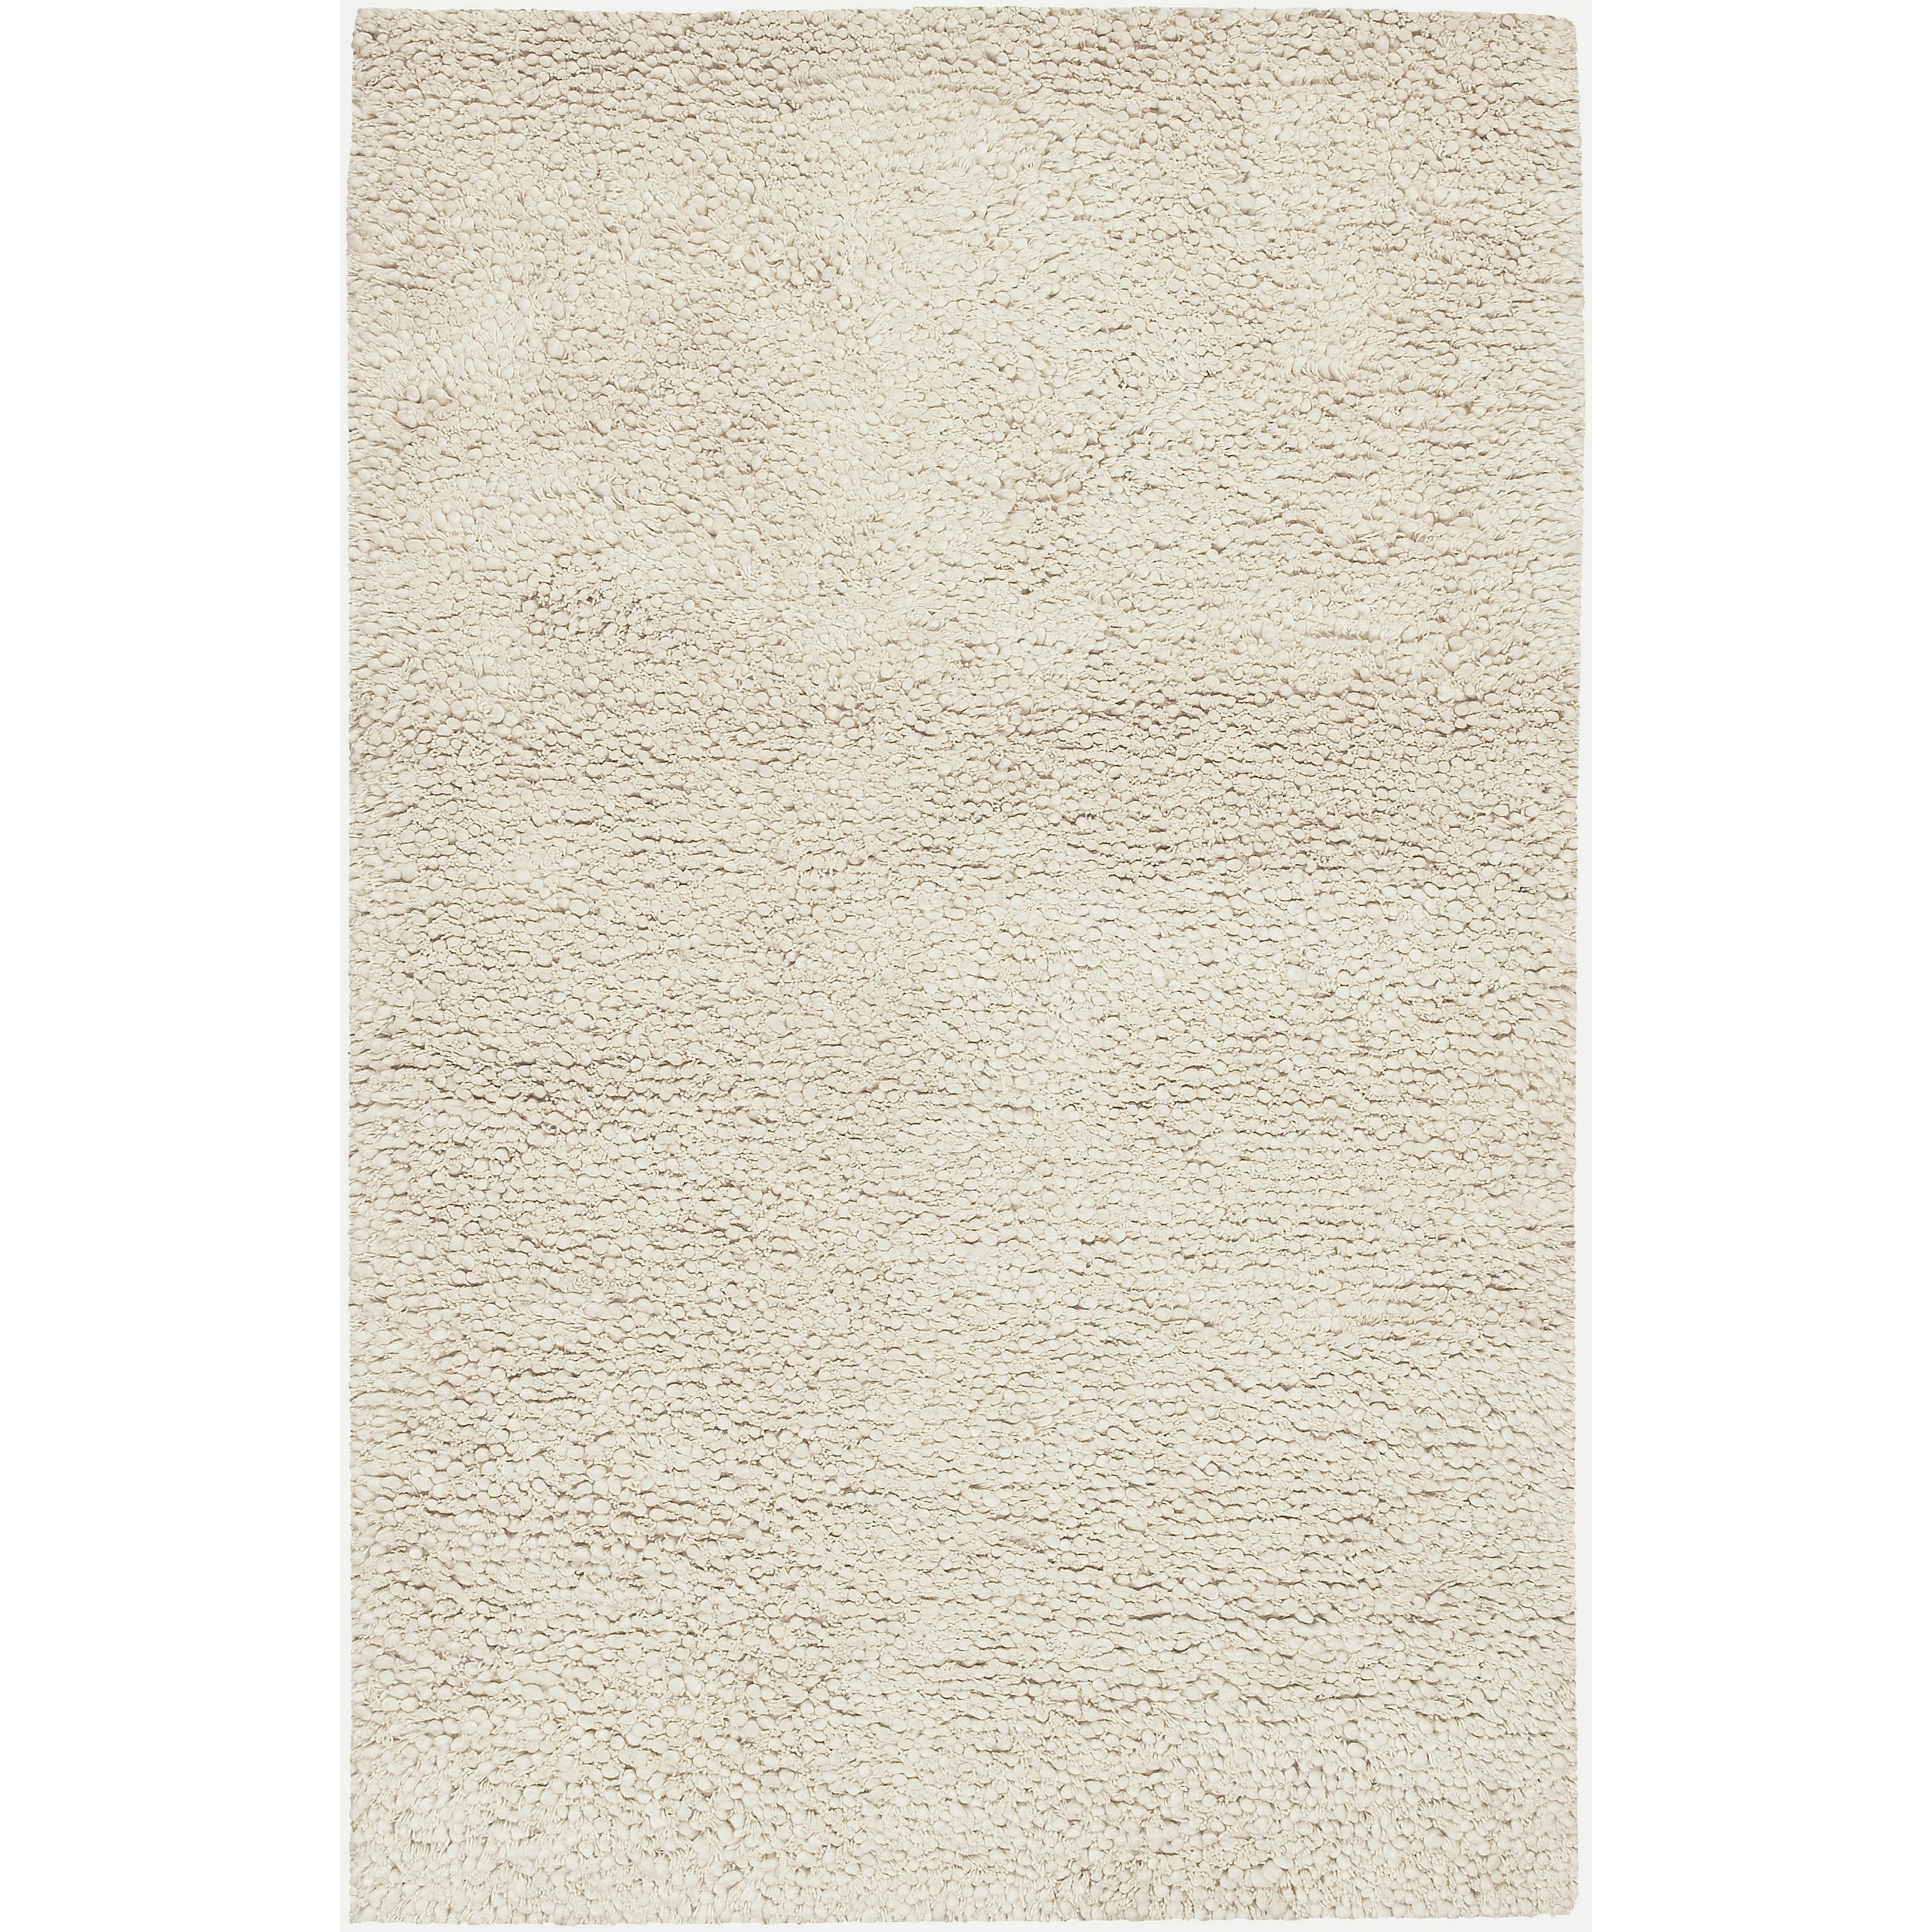 Hand-woven Ramsey Ivory New Zealand Wool Plush Shag Rug (3'6 x 5'6)